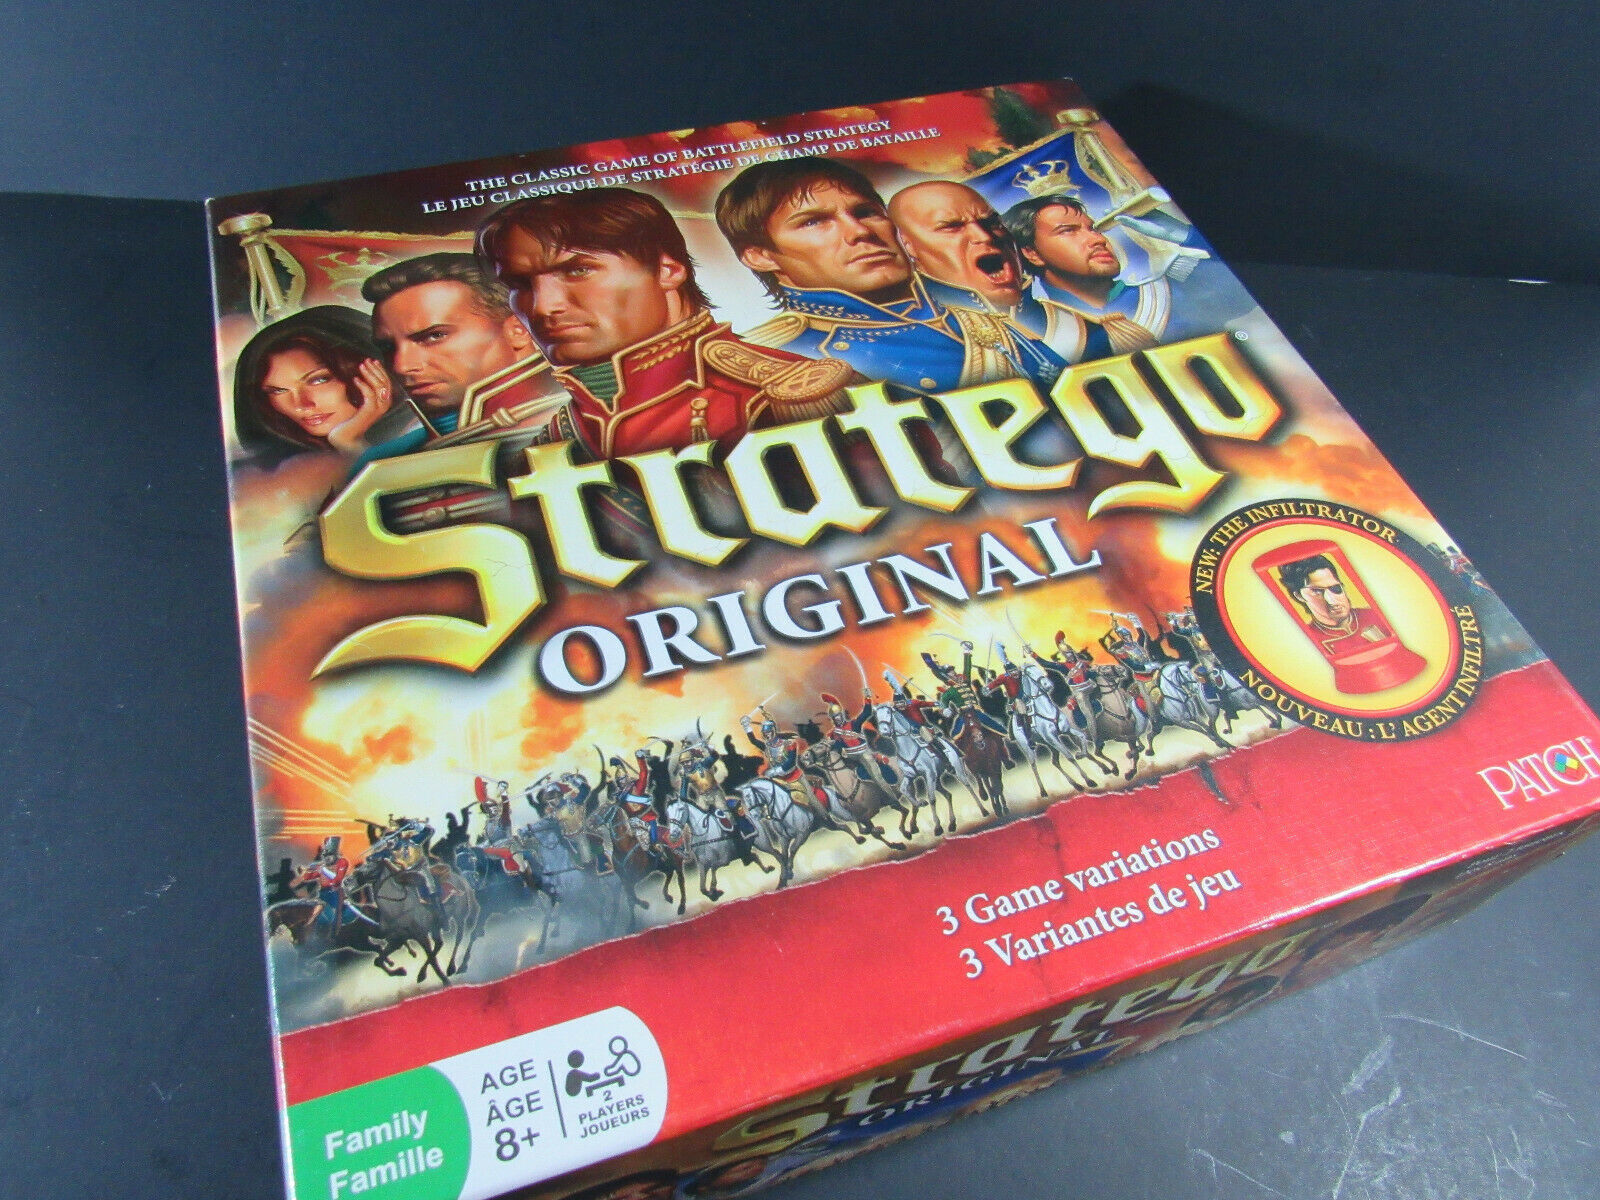 Primary image for Stratego Original Board Game Battlefield The Infiltrator